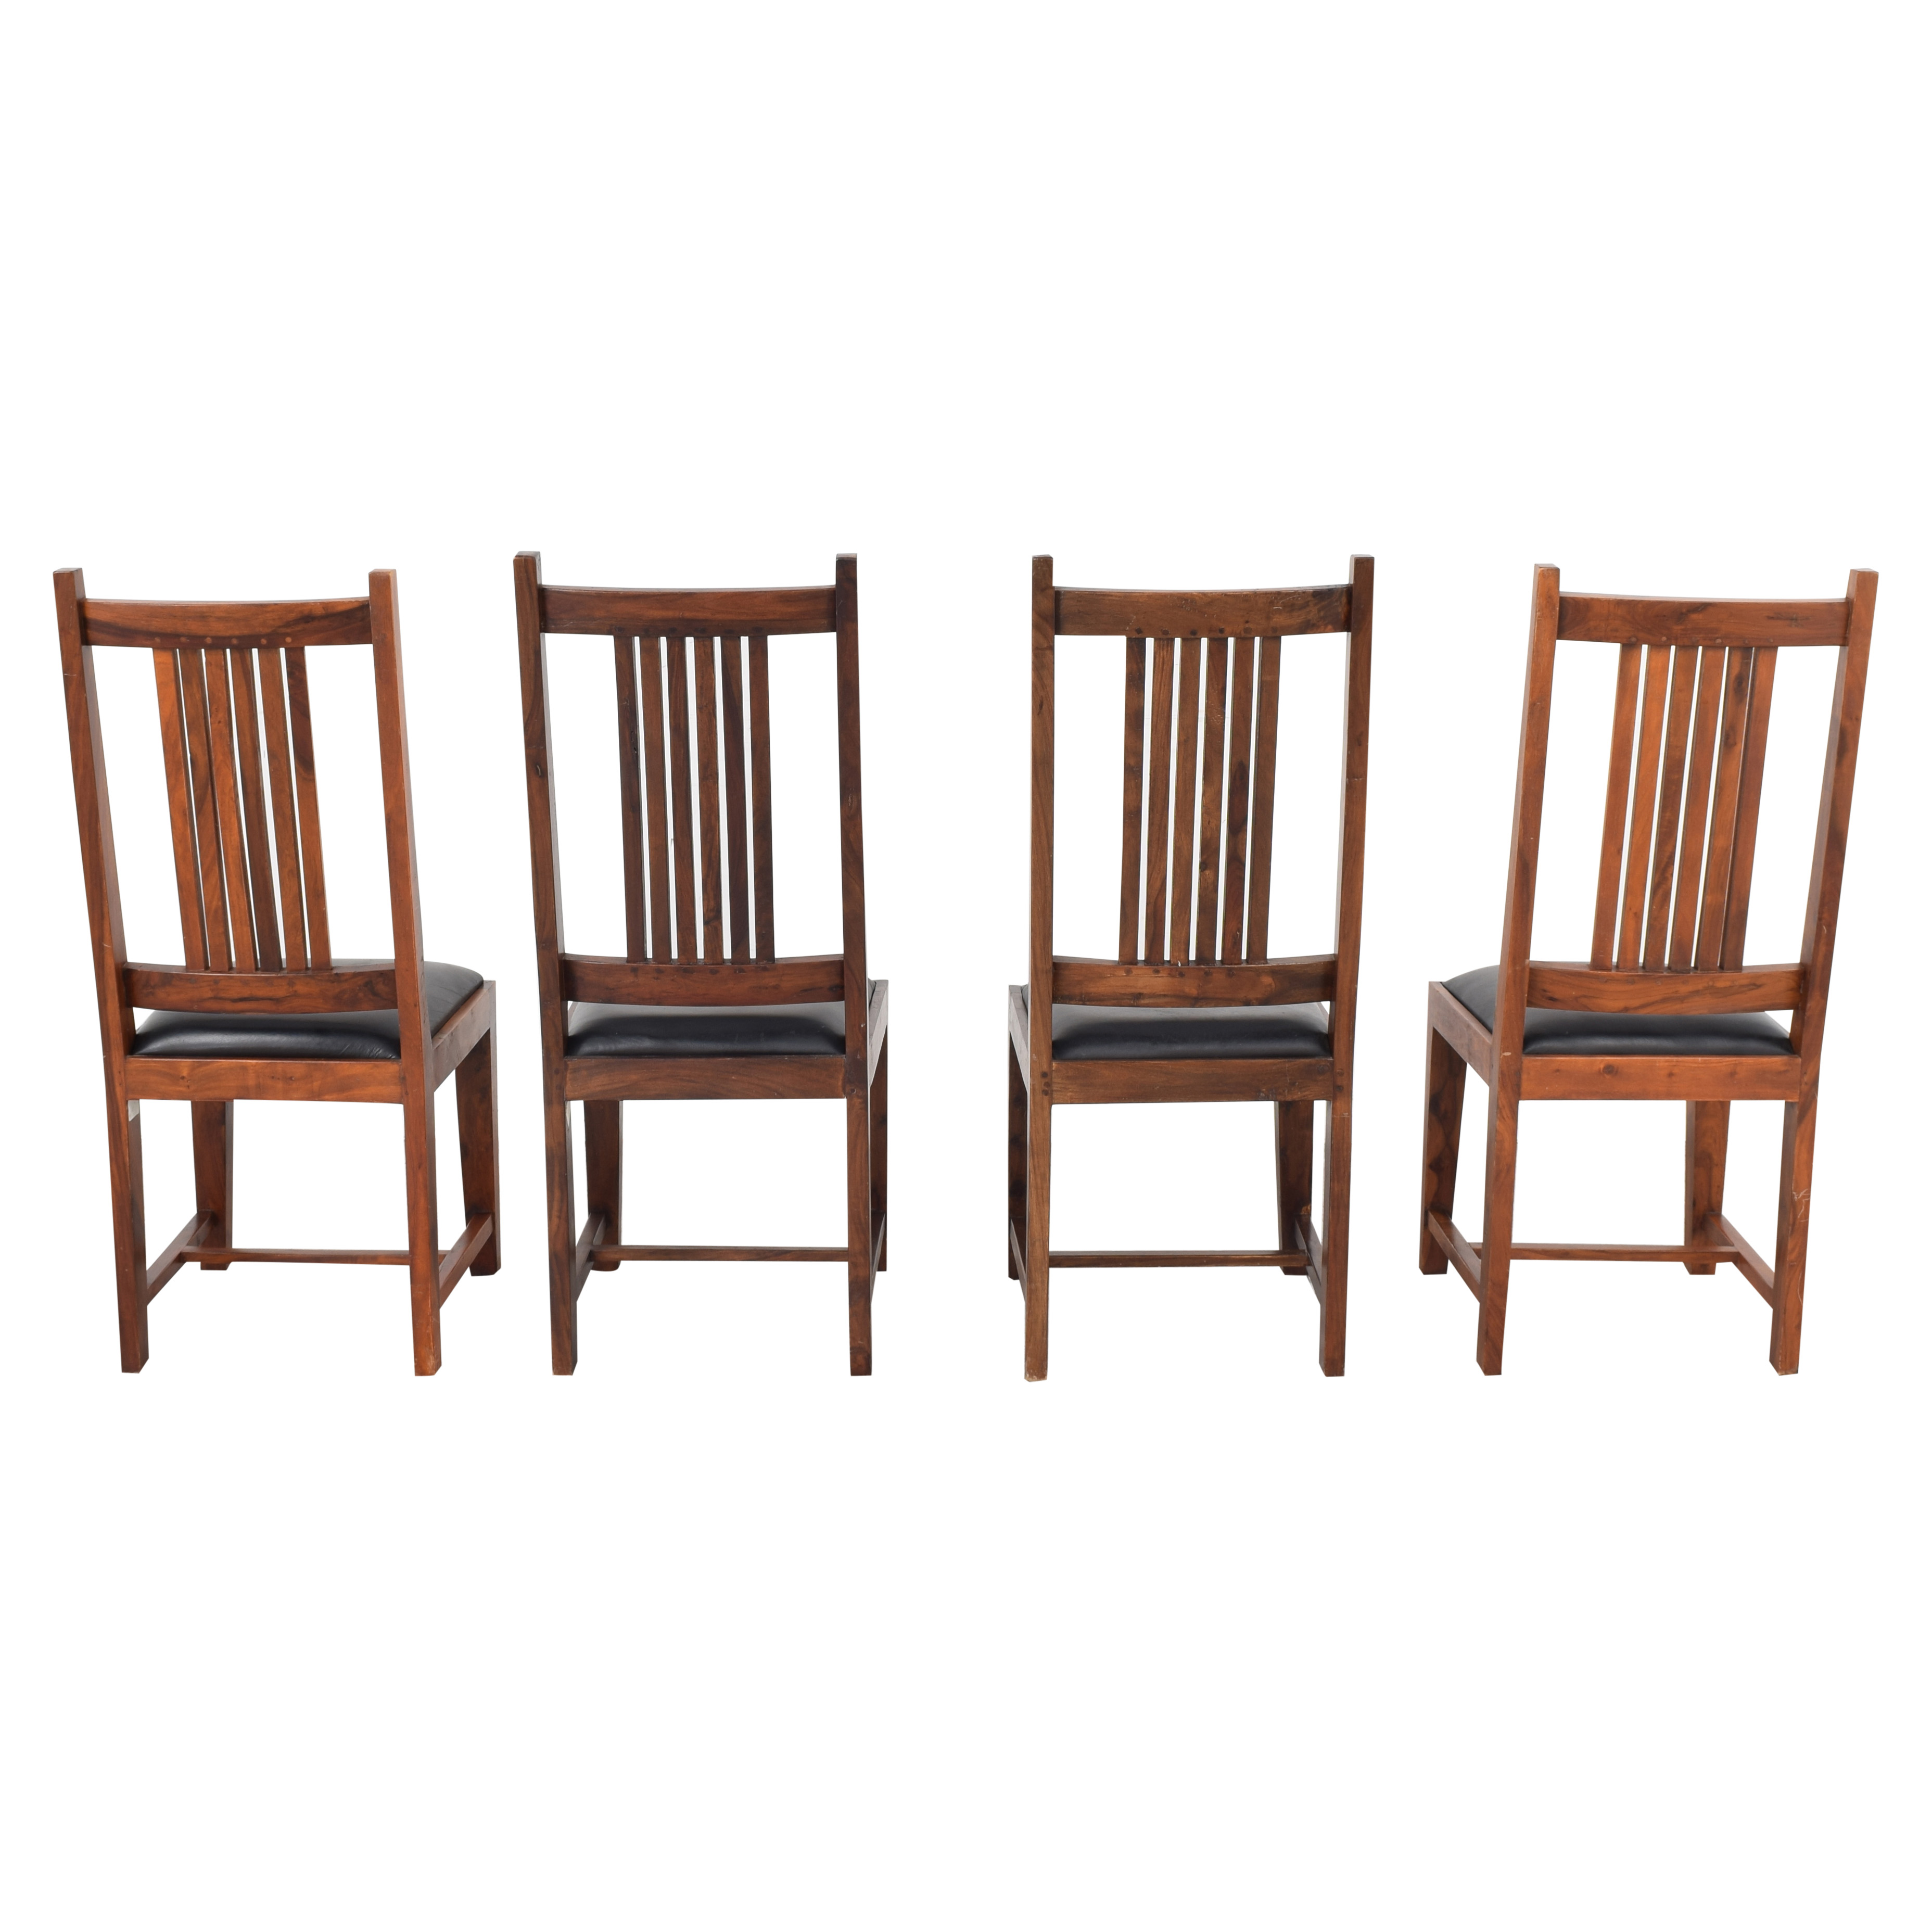 ABC Carpet & Home ABC Carpet & Home Dining Chairs coupon